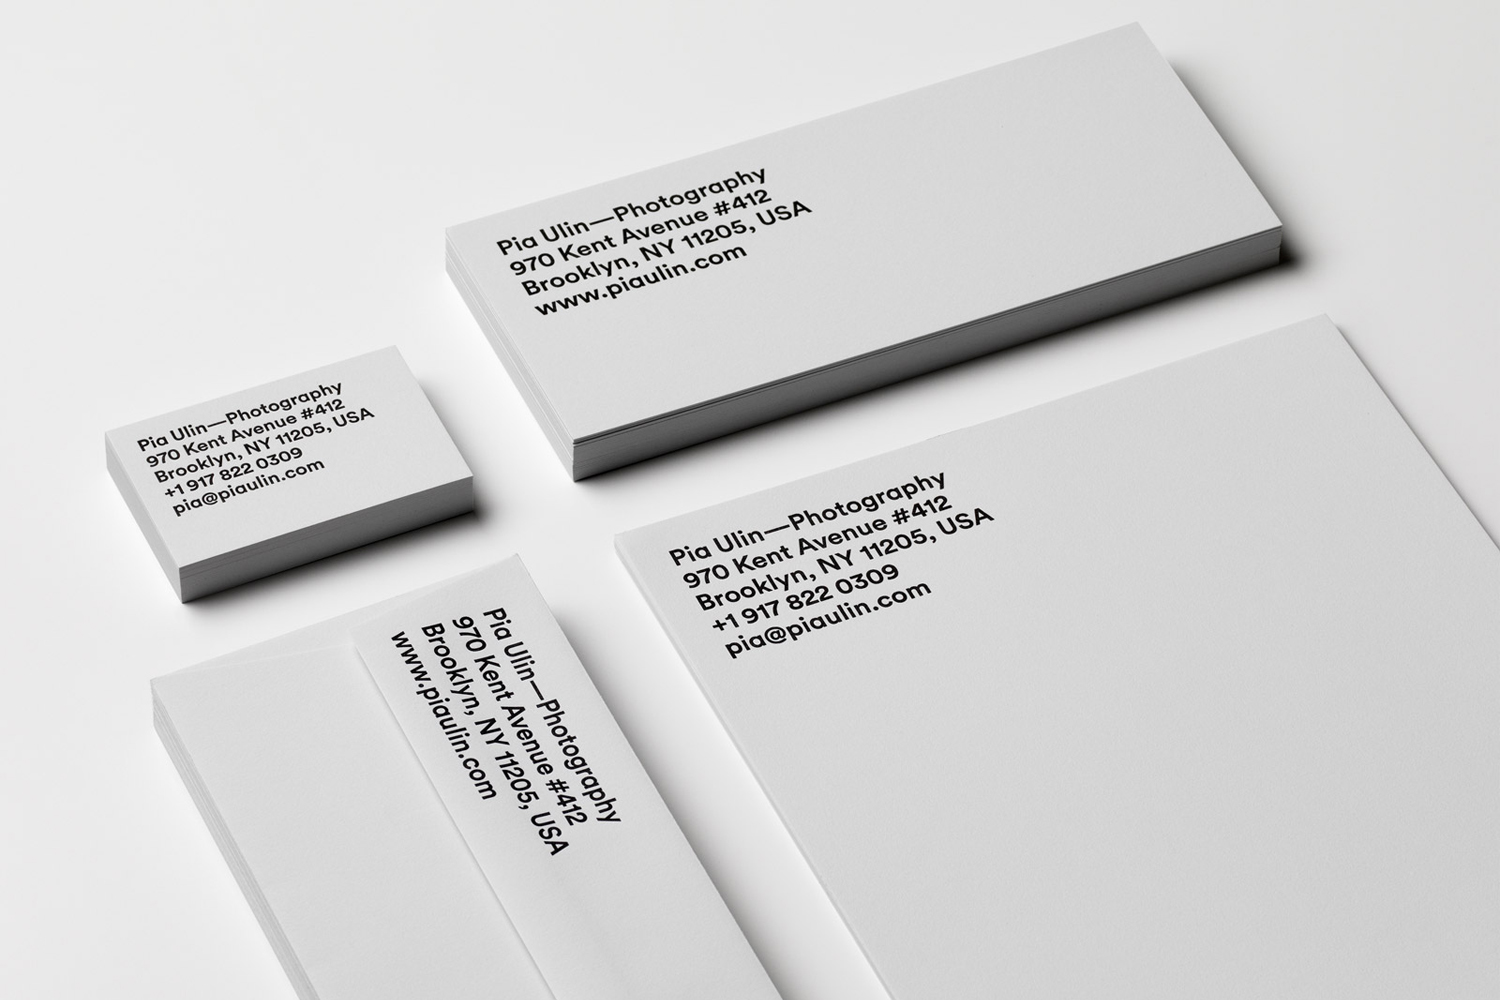 Brand identity and letterpress stationery for Pia Ulin Photography by The Studio, Sweden